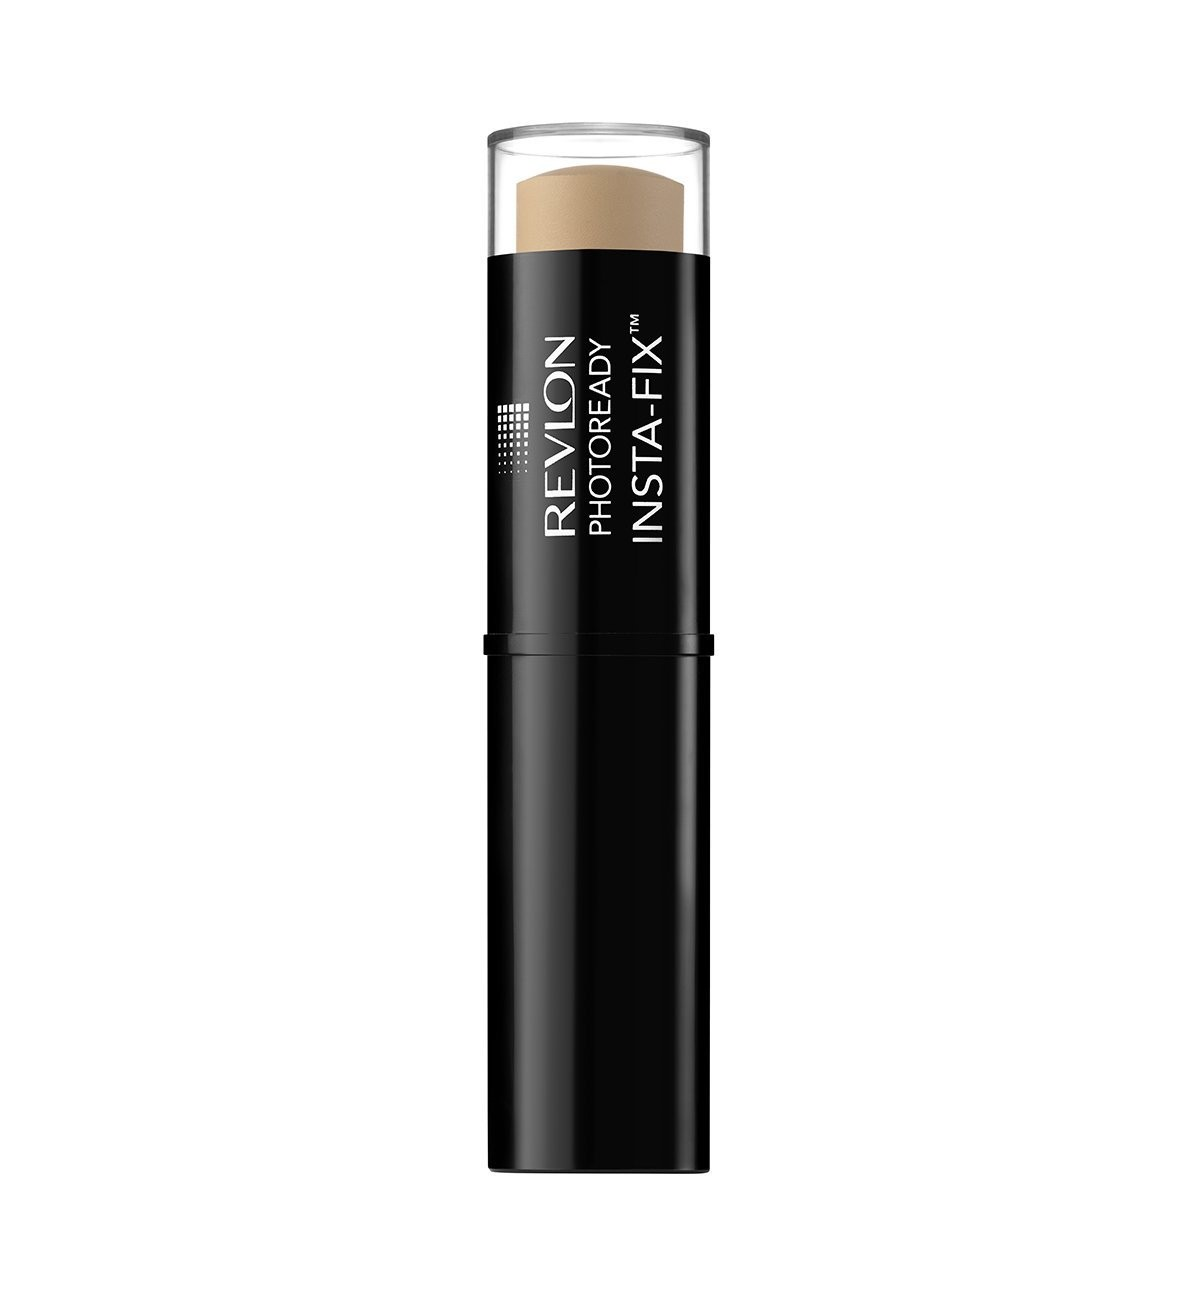 Revlon Photoready Insta-fix Foundation Stick - 120 Vanilla